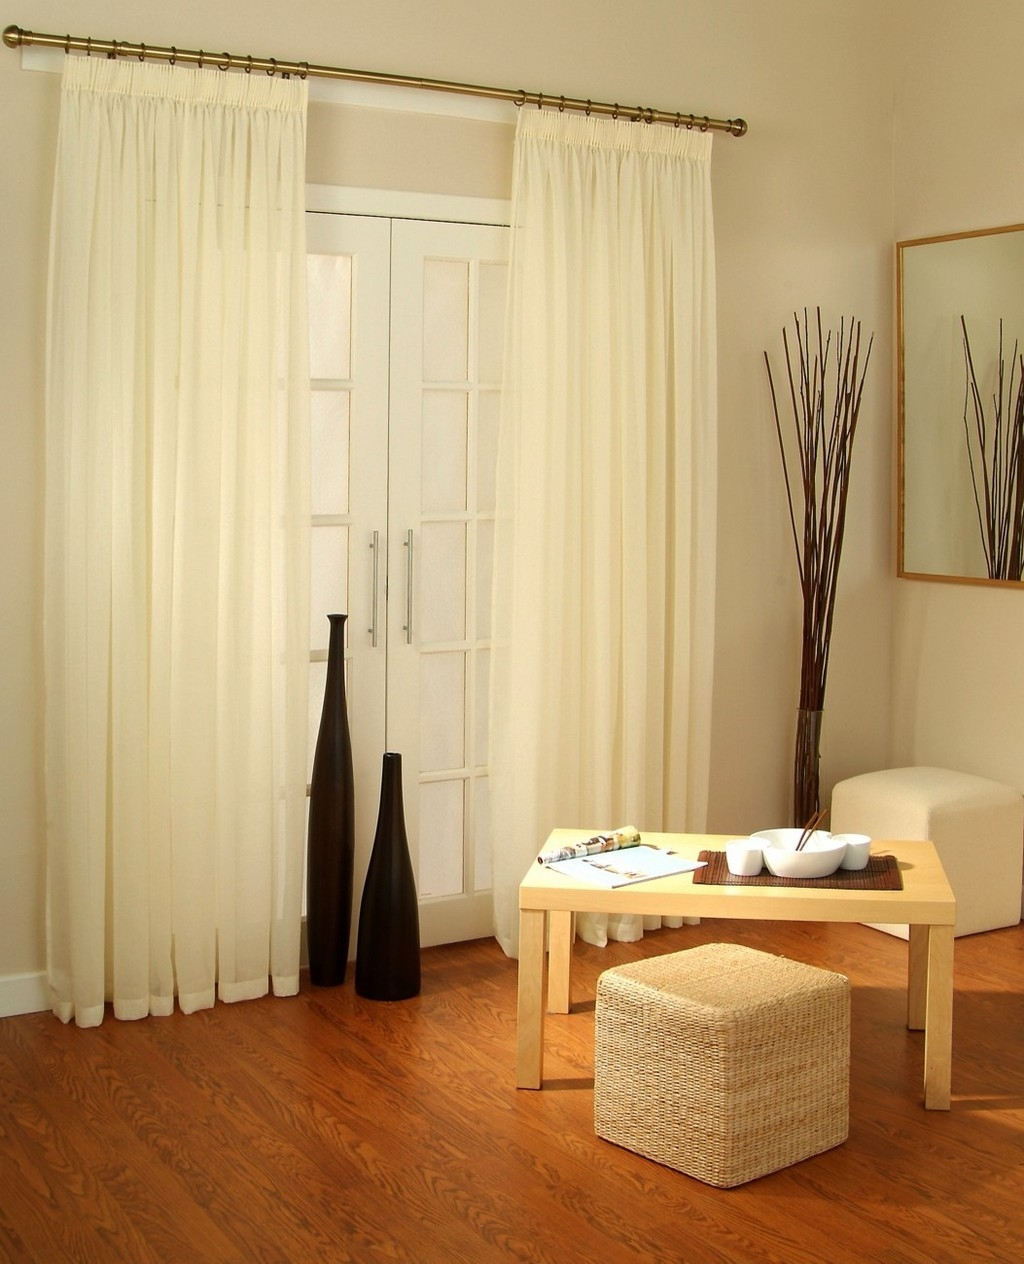 White Extra Long Shower Curtain Curtains Collection Pinterest With Extra Long Voile Curtains (Image 12 of 15)